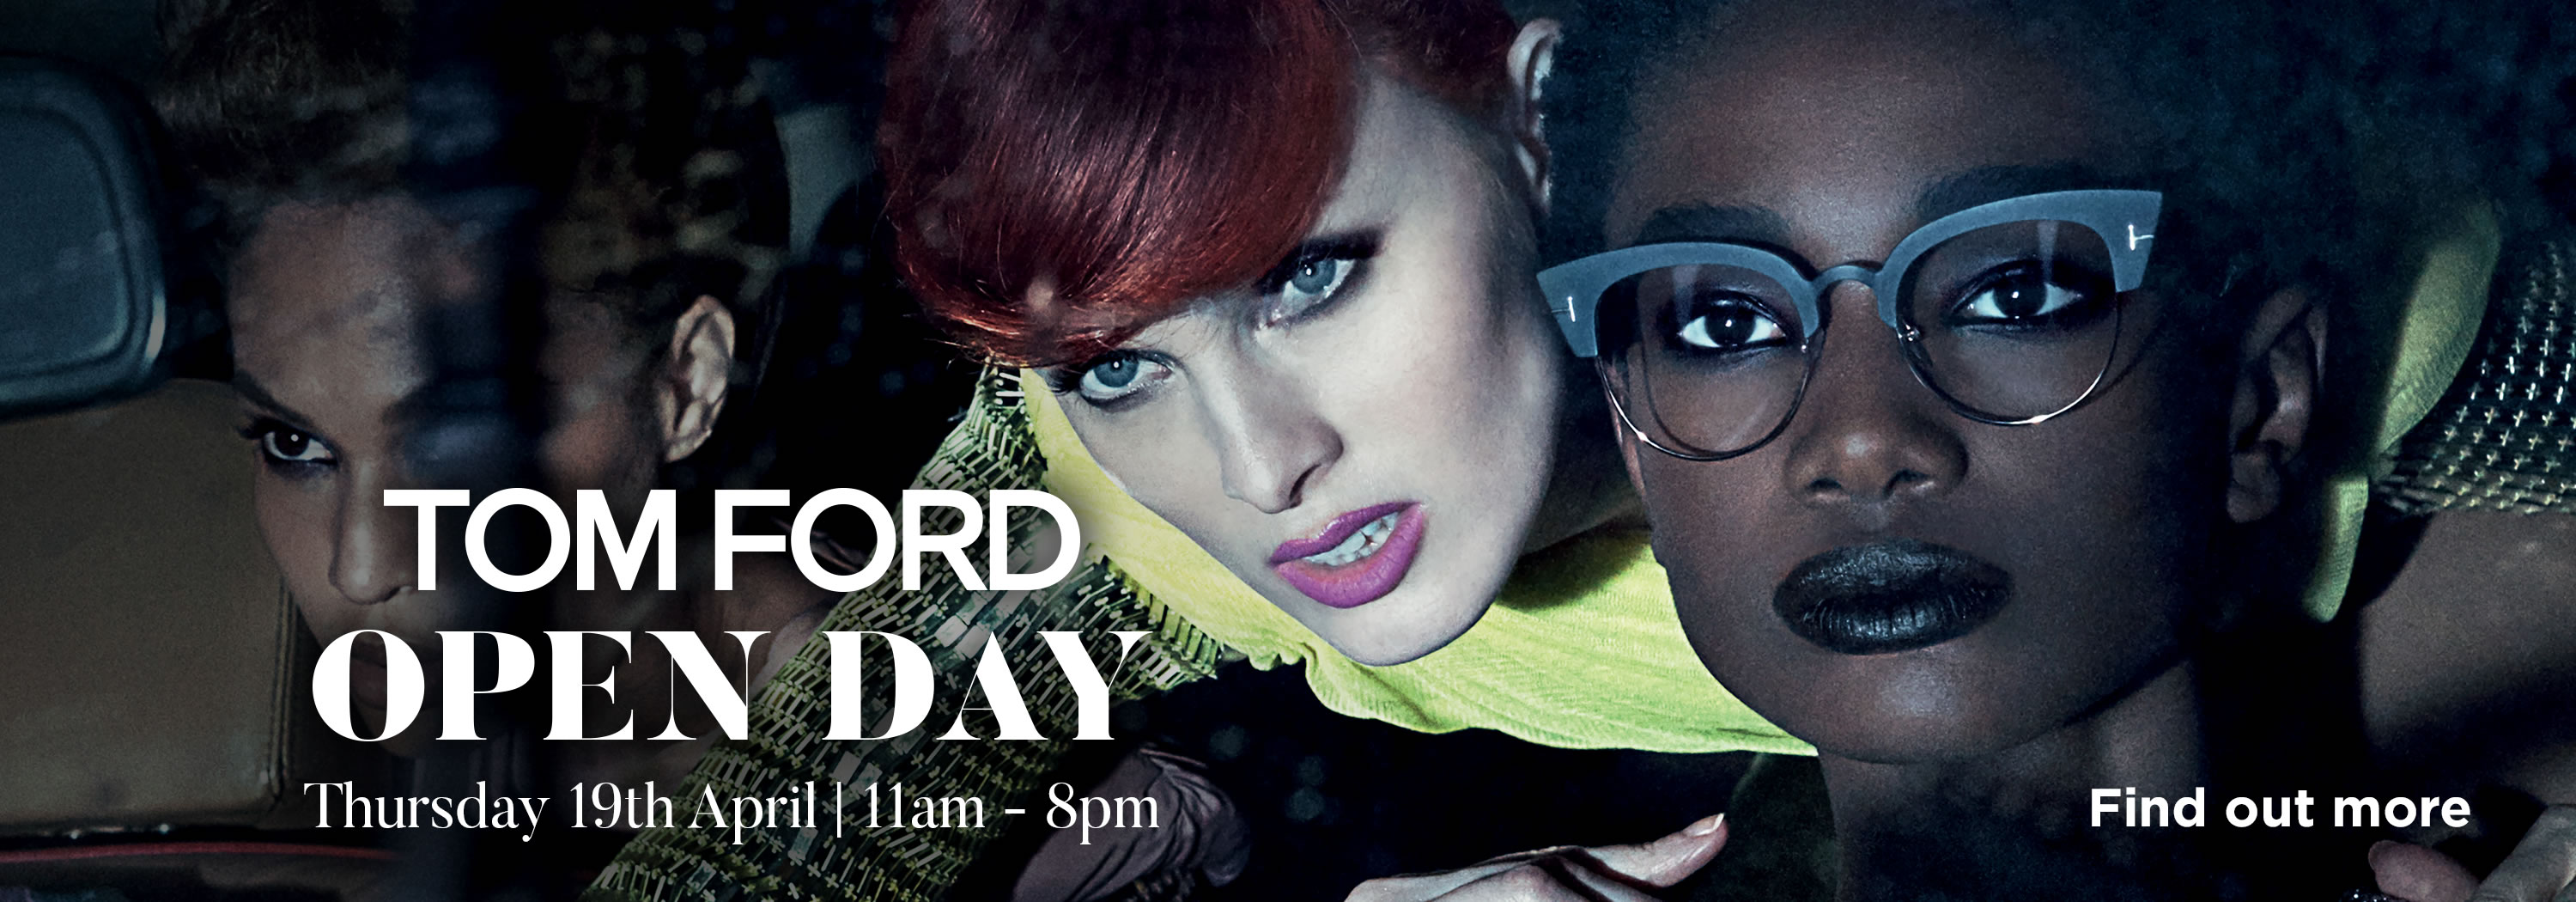 Tom Ford OPEN DAY- Northern Ireland Optician